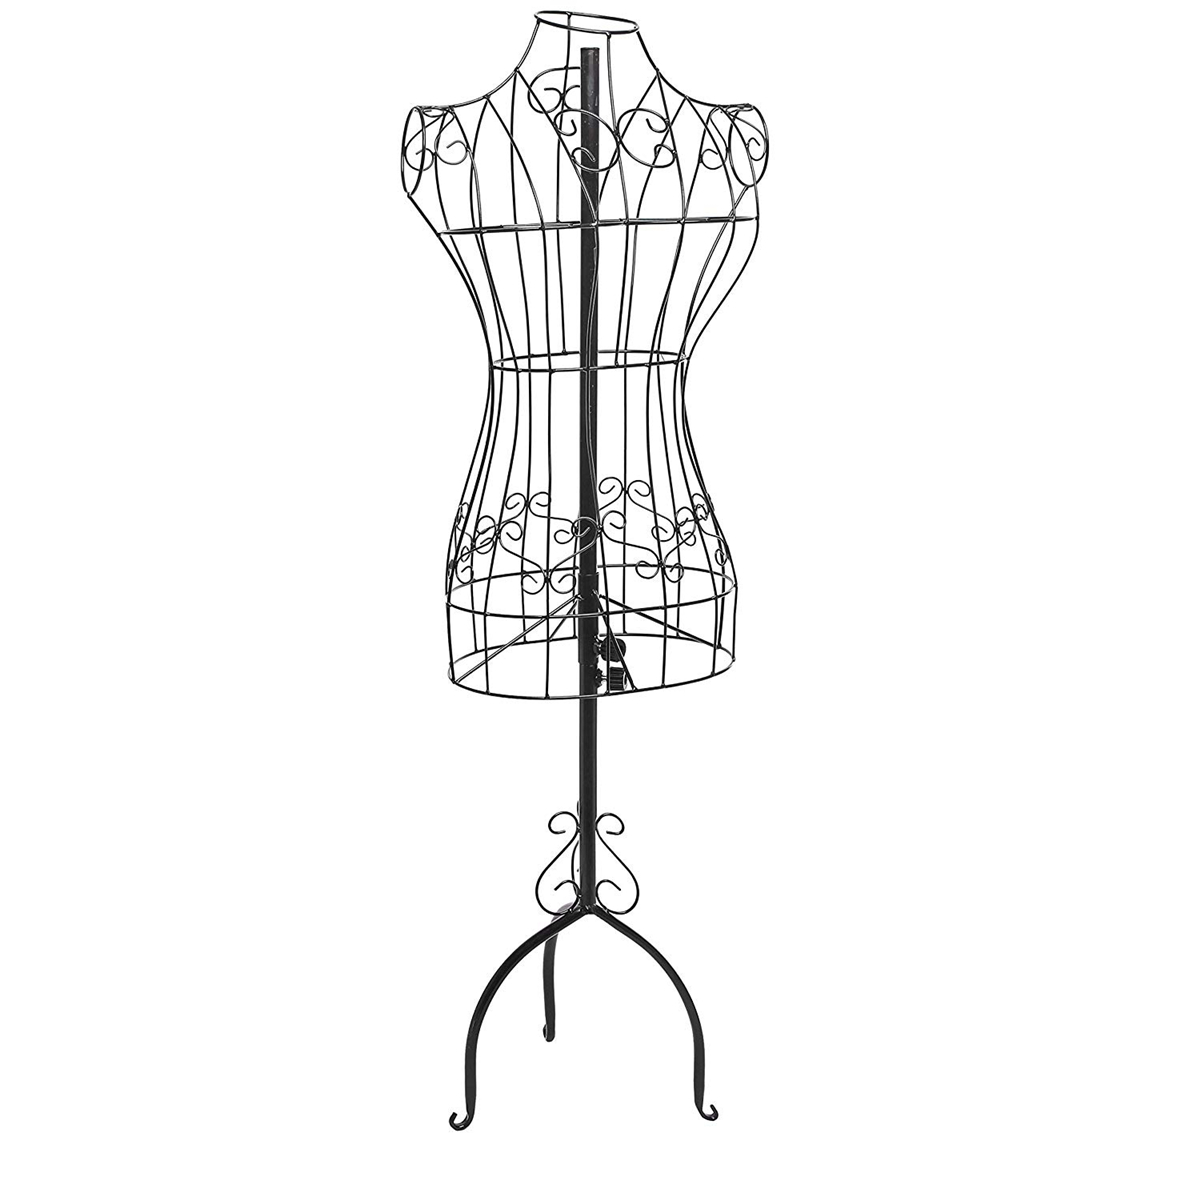 Mannequins Coat Hanger Display Stand Woman Whole body and Half-length Woman Clothing Model Iron Frame Models Bridal MannequinMannequins Coat Hanger Display Stand Woman Whole body and Half-length Woman Clothing Model Iron Frame Models Bridal Mannequin